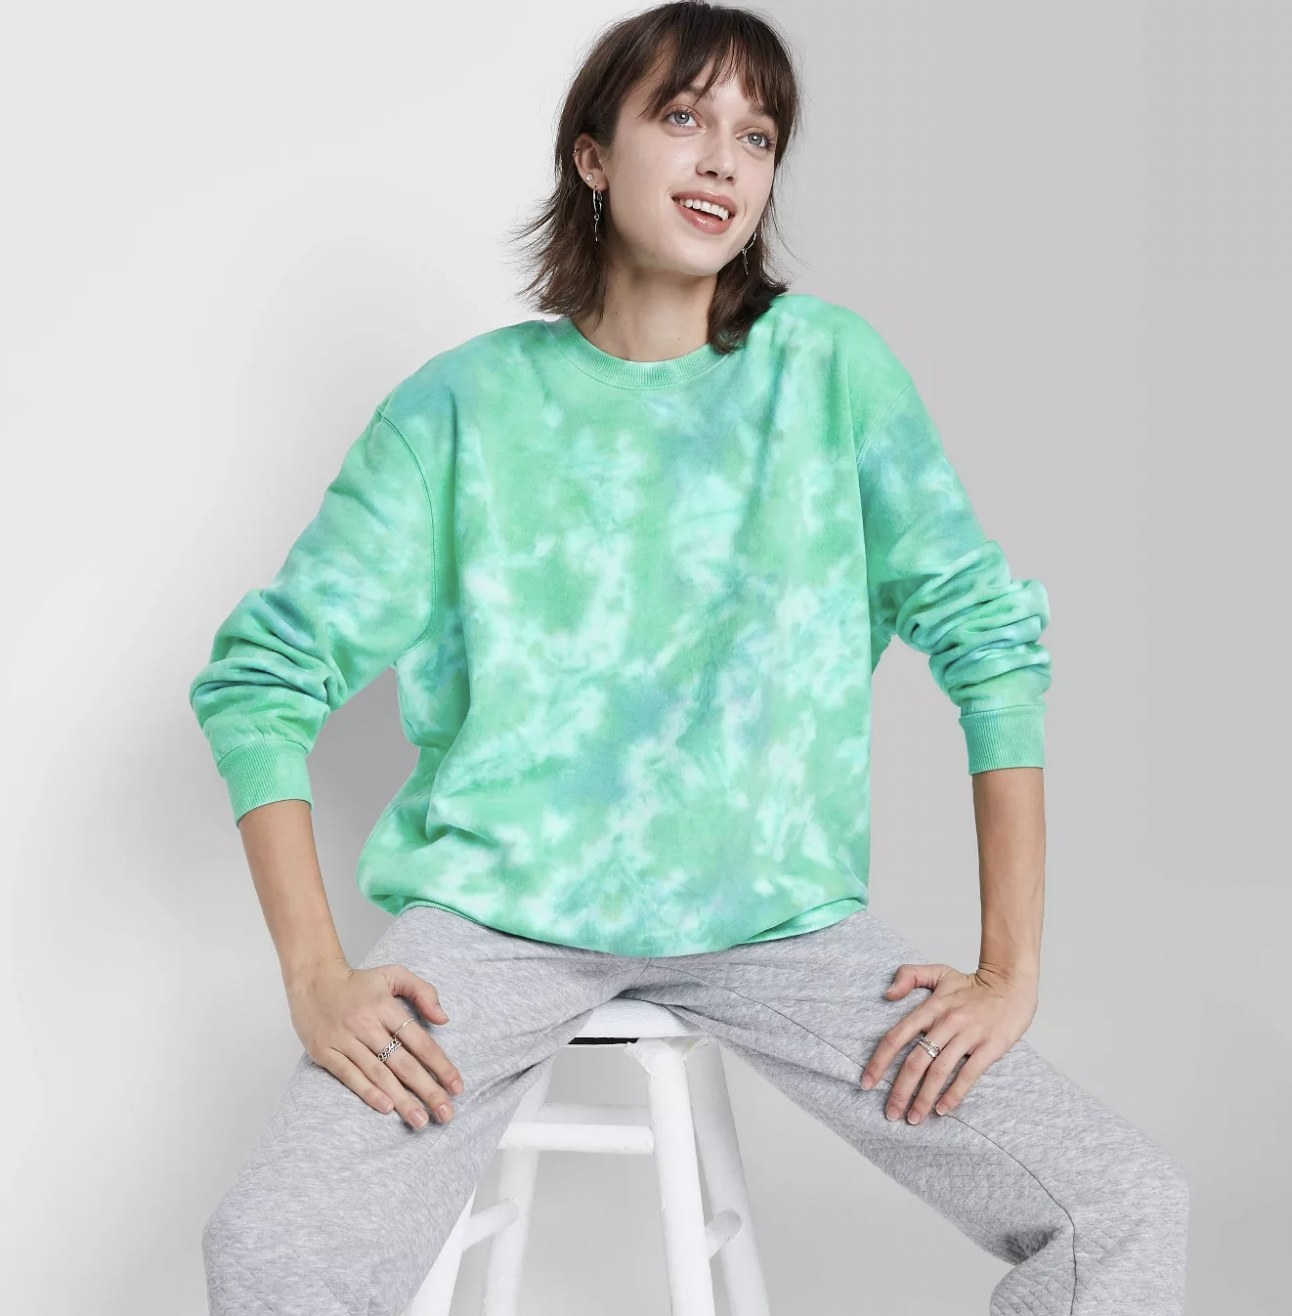 A model wearing a green and blue tie-dyed sweatshirt